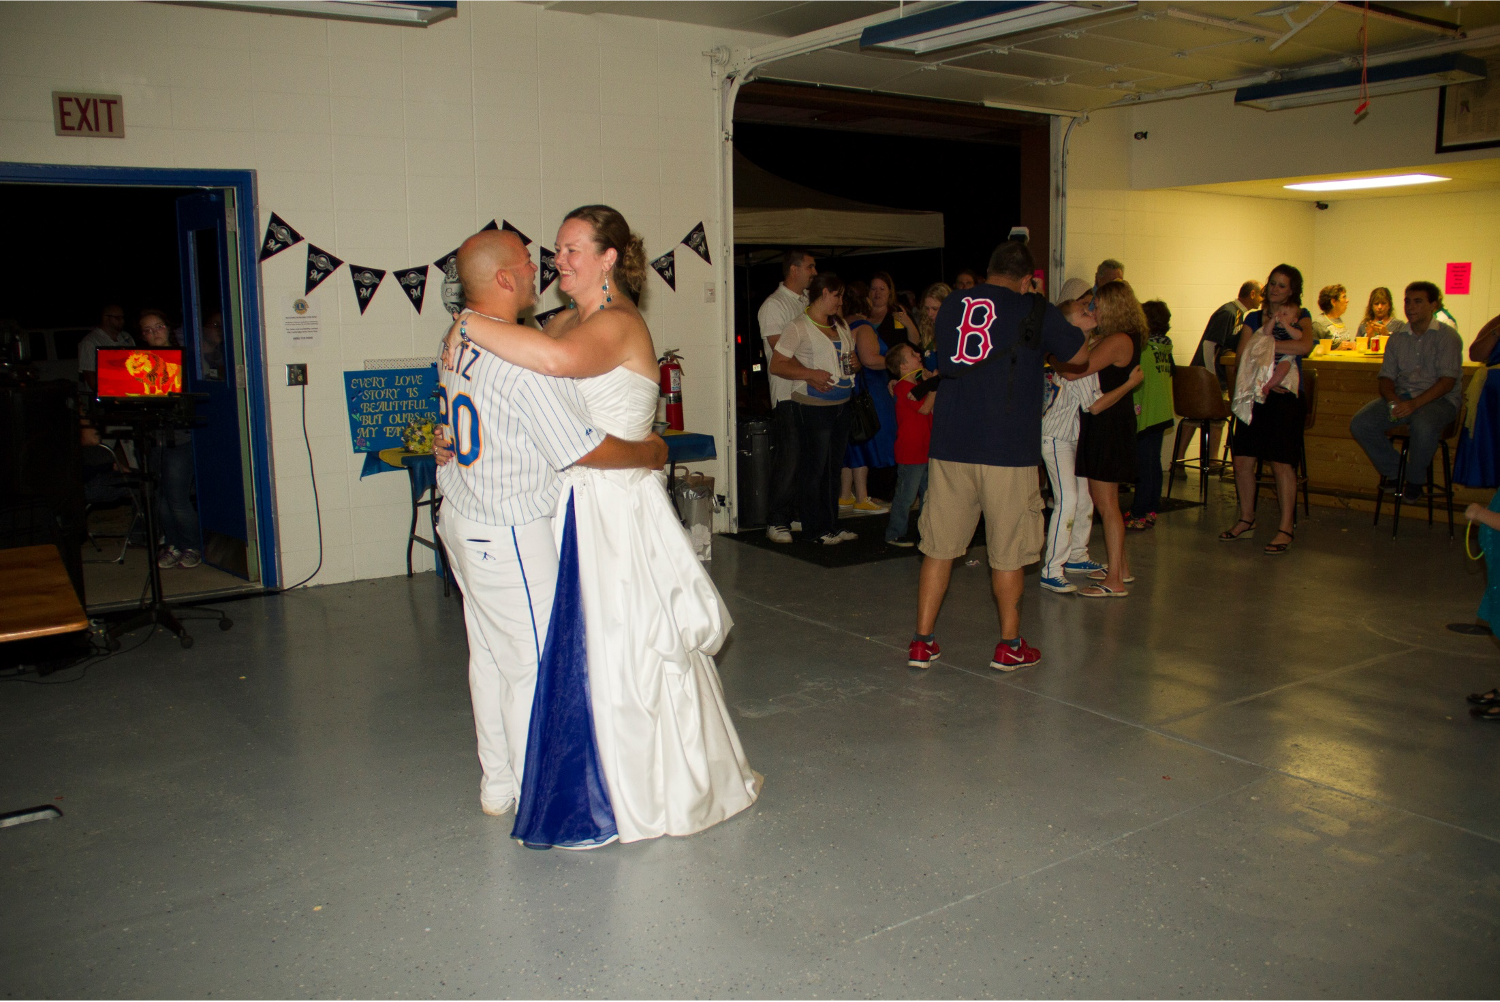 Bride & groom having their first dance at a wedding at the clubhouse